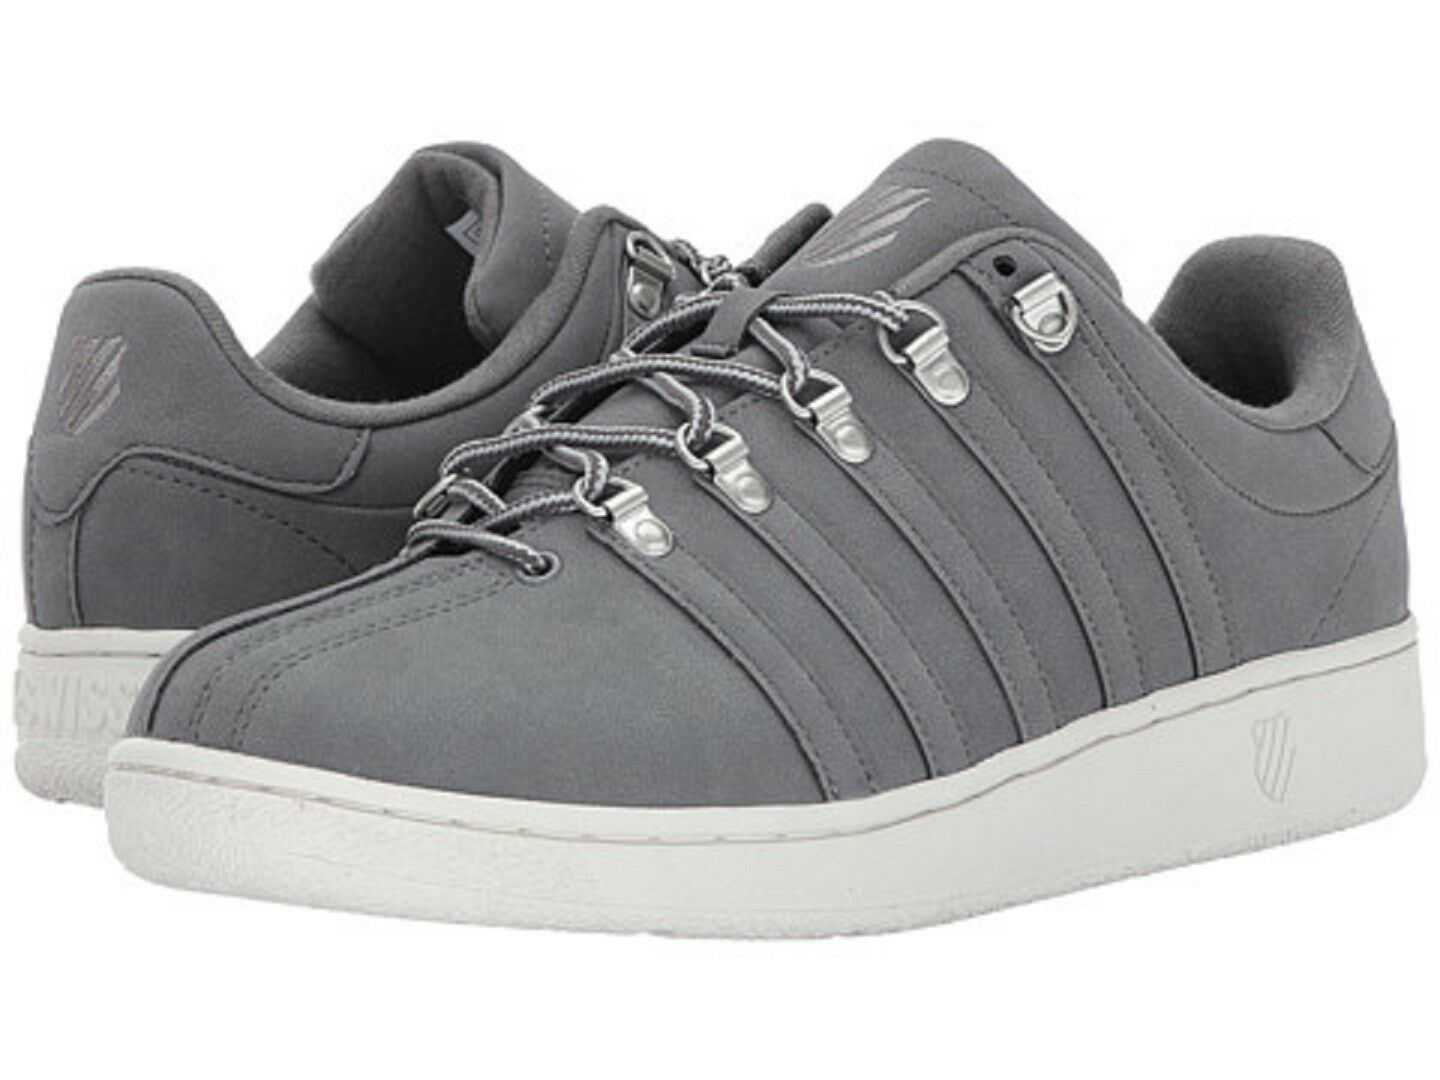 K-SWISS 05588-067 CLASSIC VN SE Mn's (M) Charcoal Leather Lifestyle Shoes